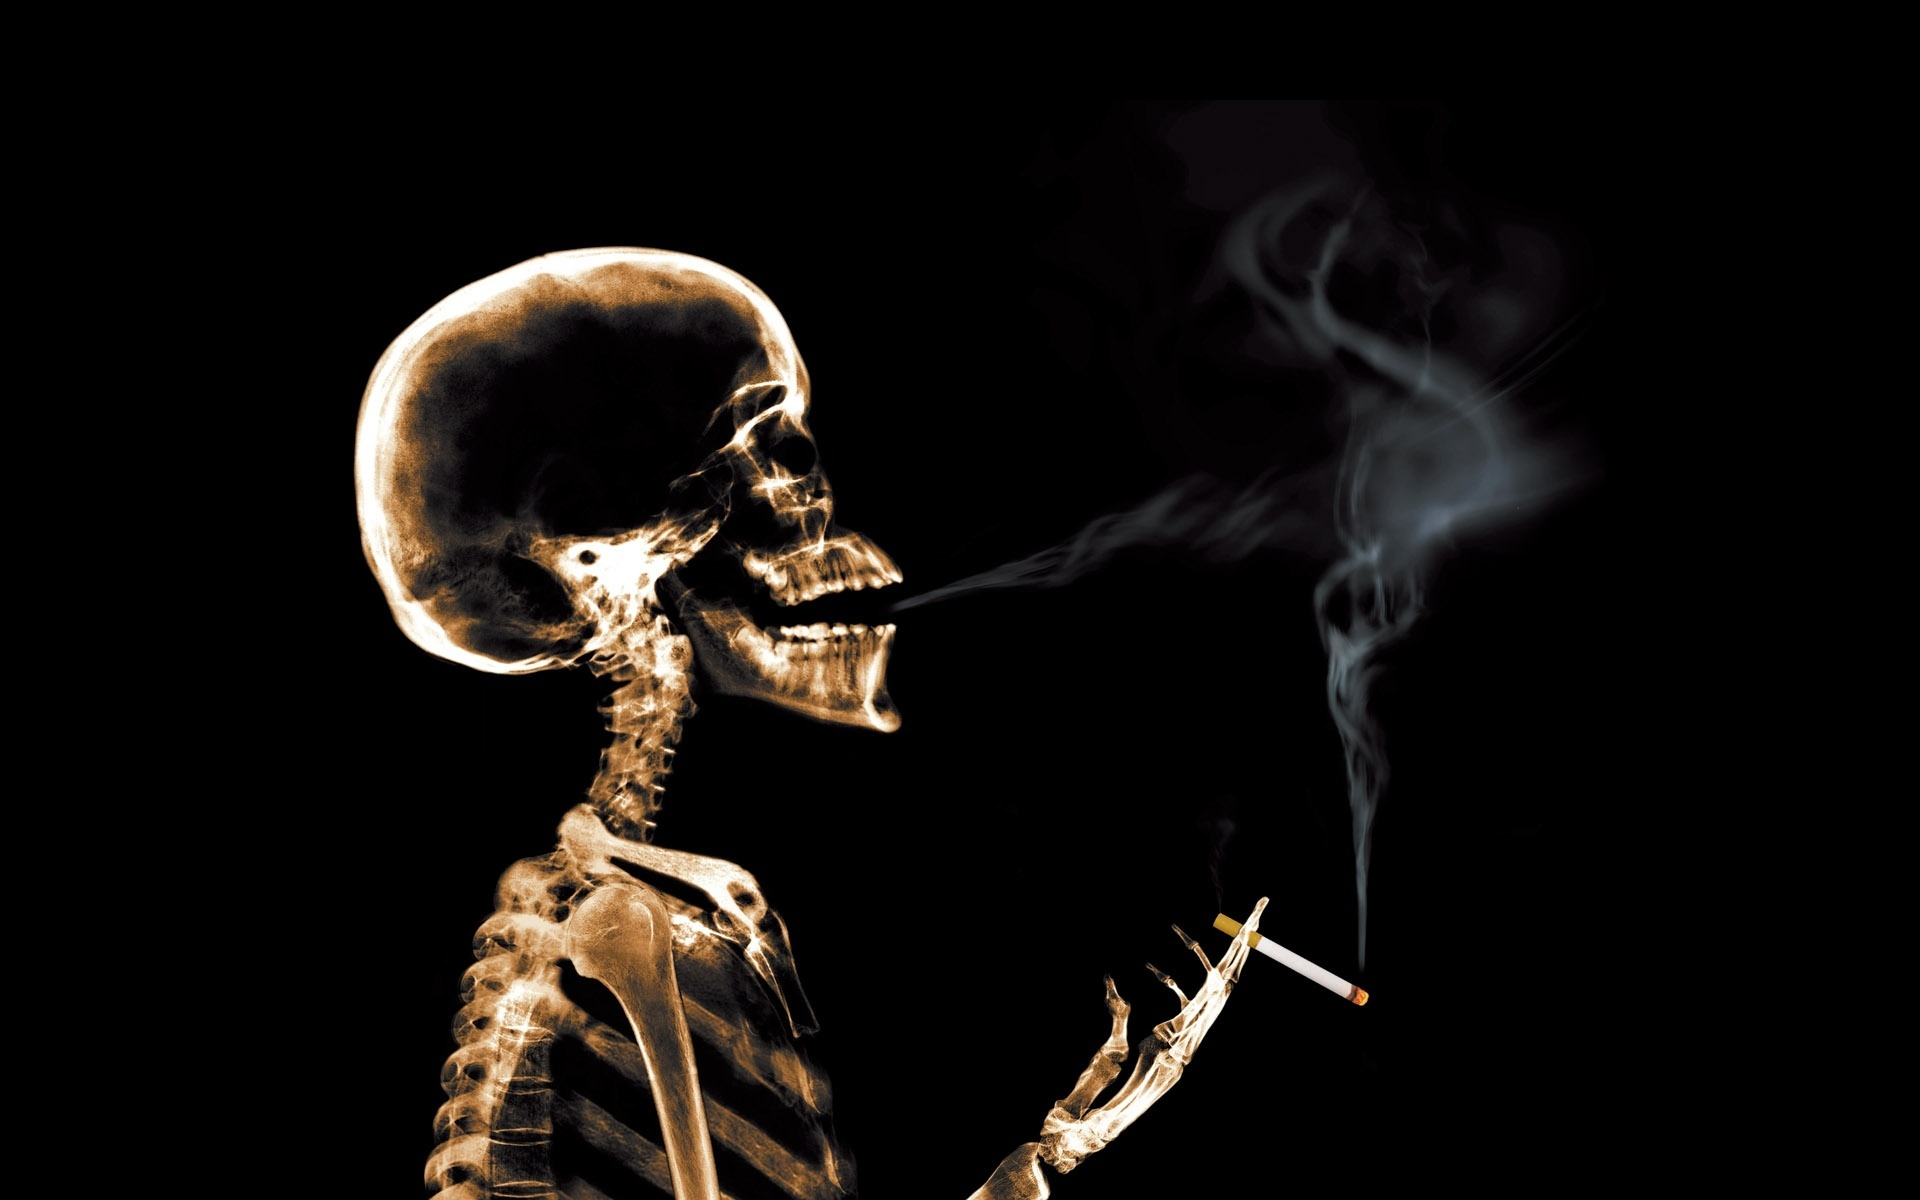 skull x-rays, texture, background, download photo, smoking head skull x-ray texture background